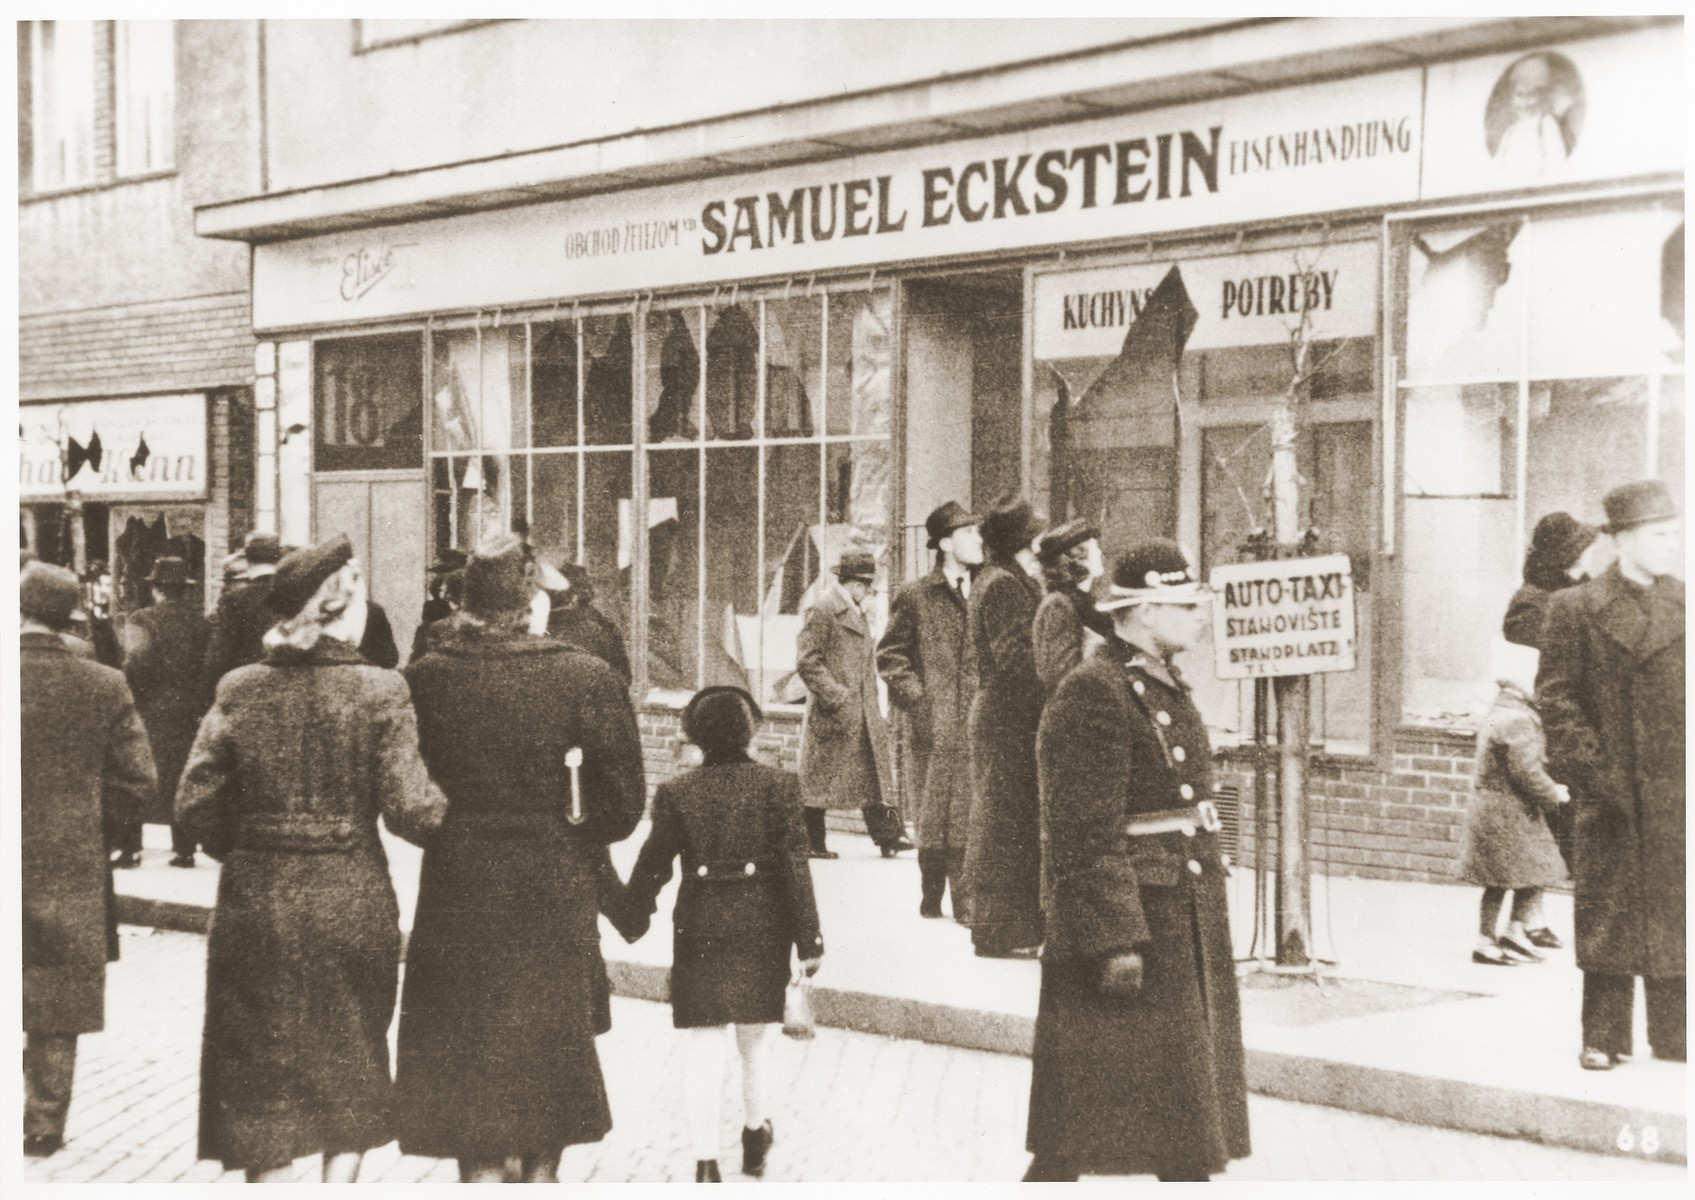 Pedestrians view the vandalized iron goods store owned by Samuel Eckstein.